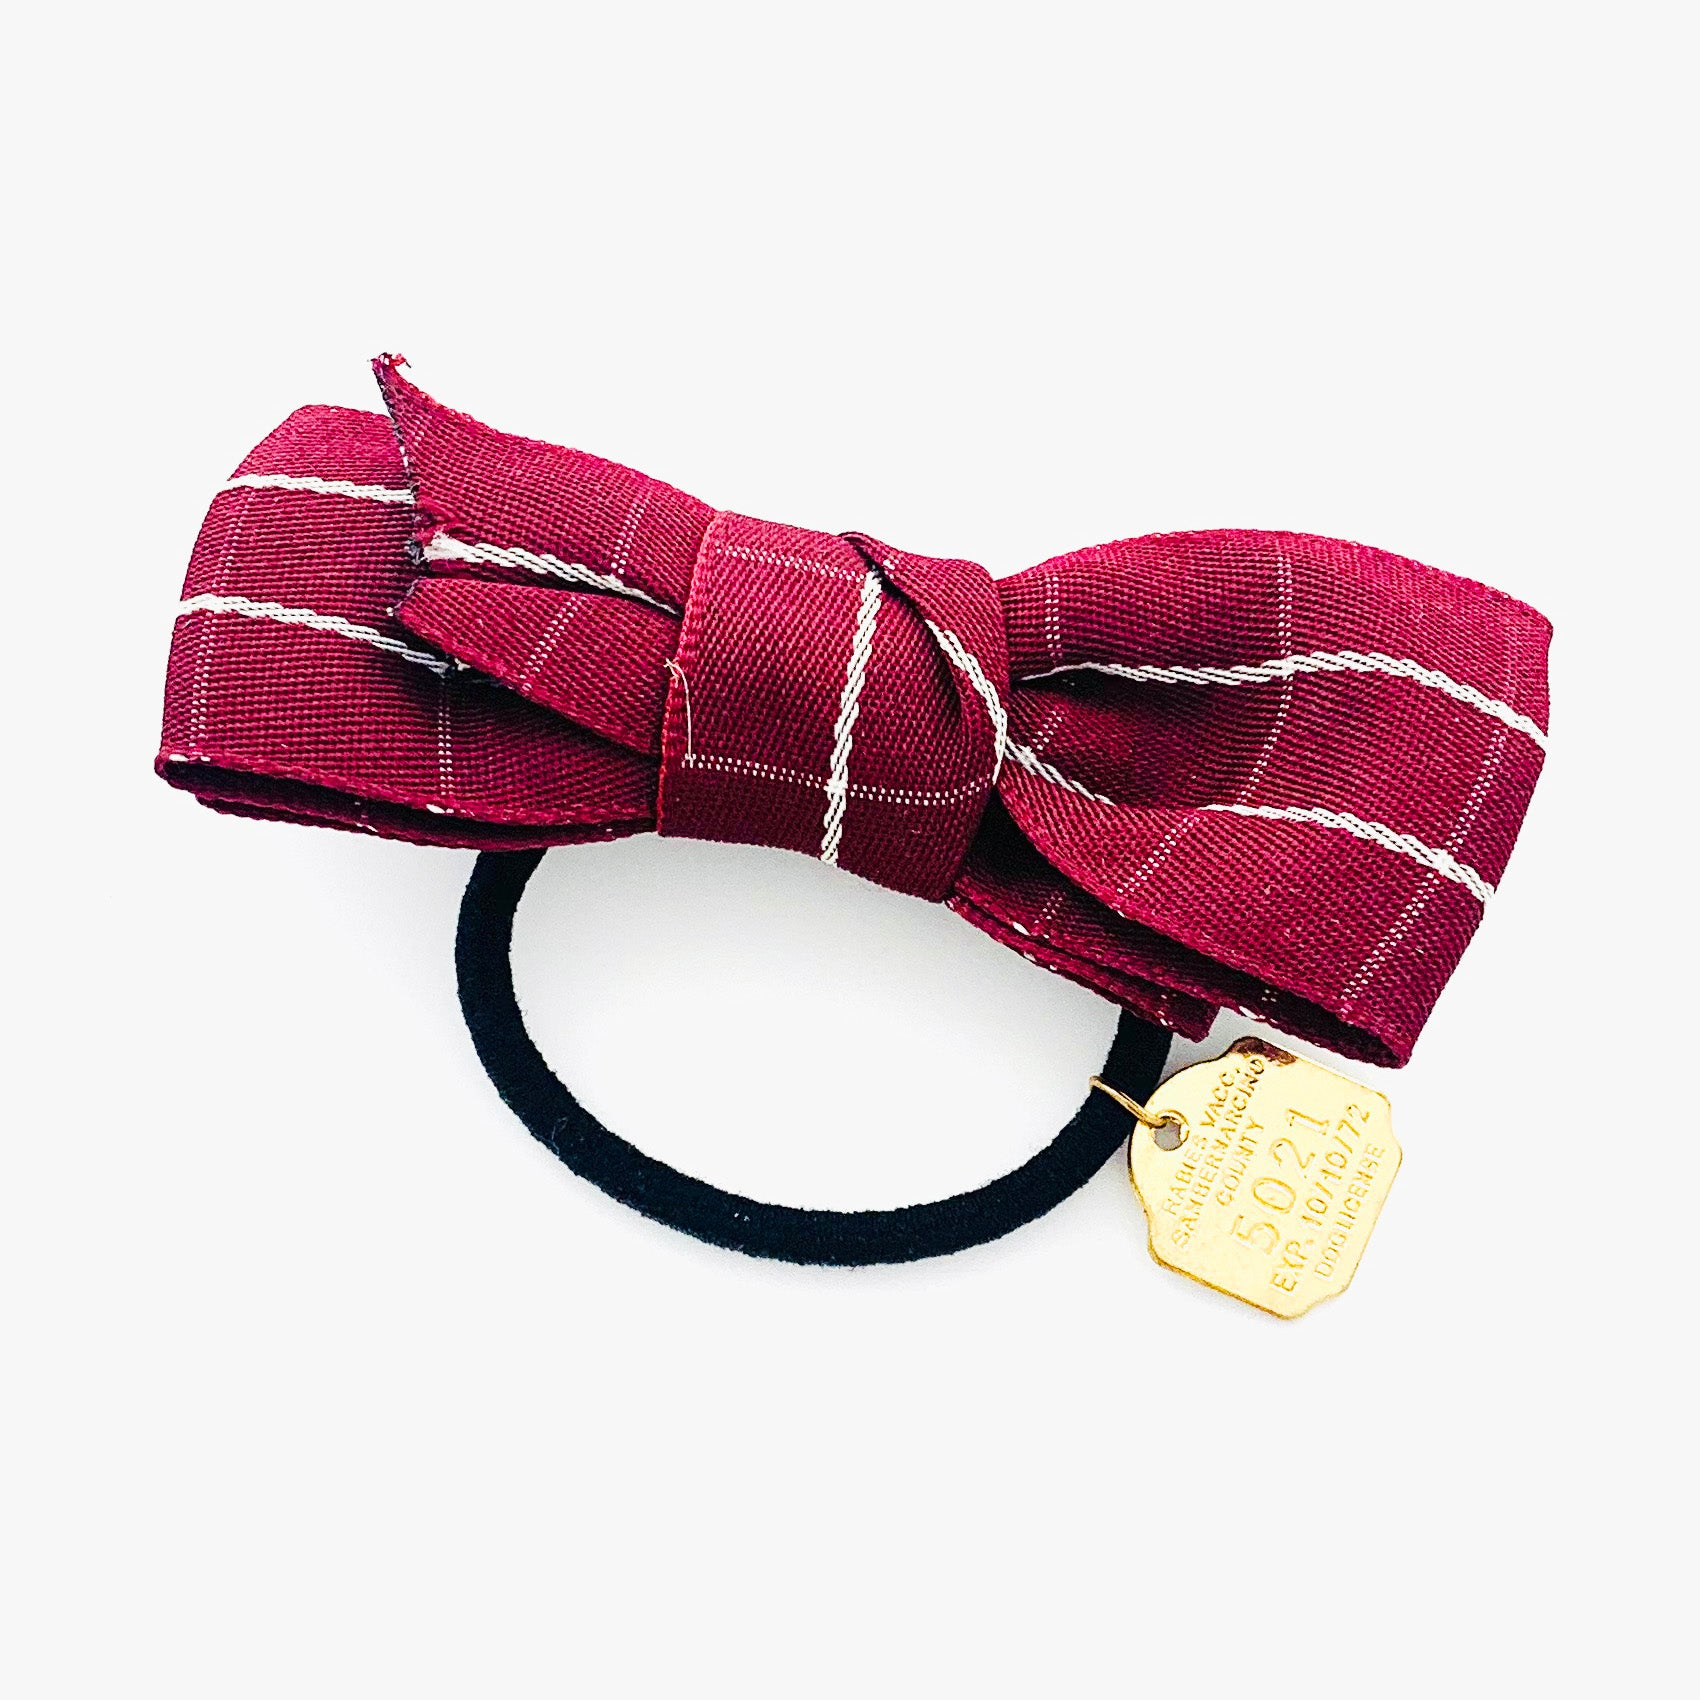 Hair tie with maroon fabric ribbon and gold charm detail